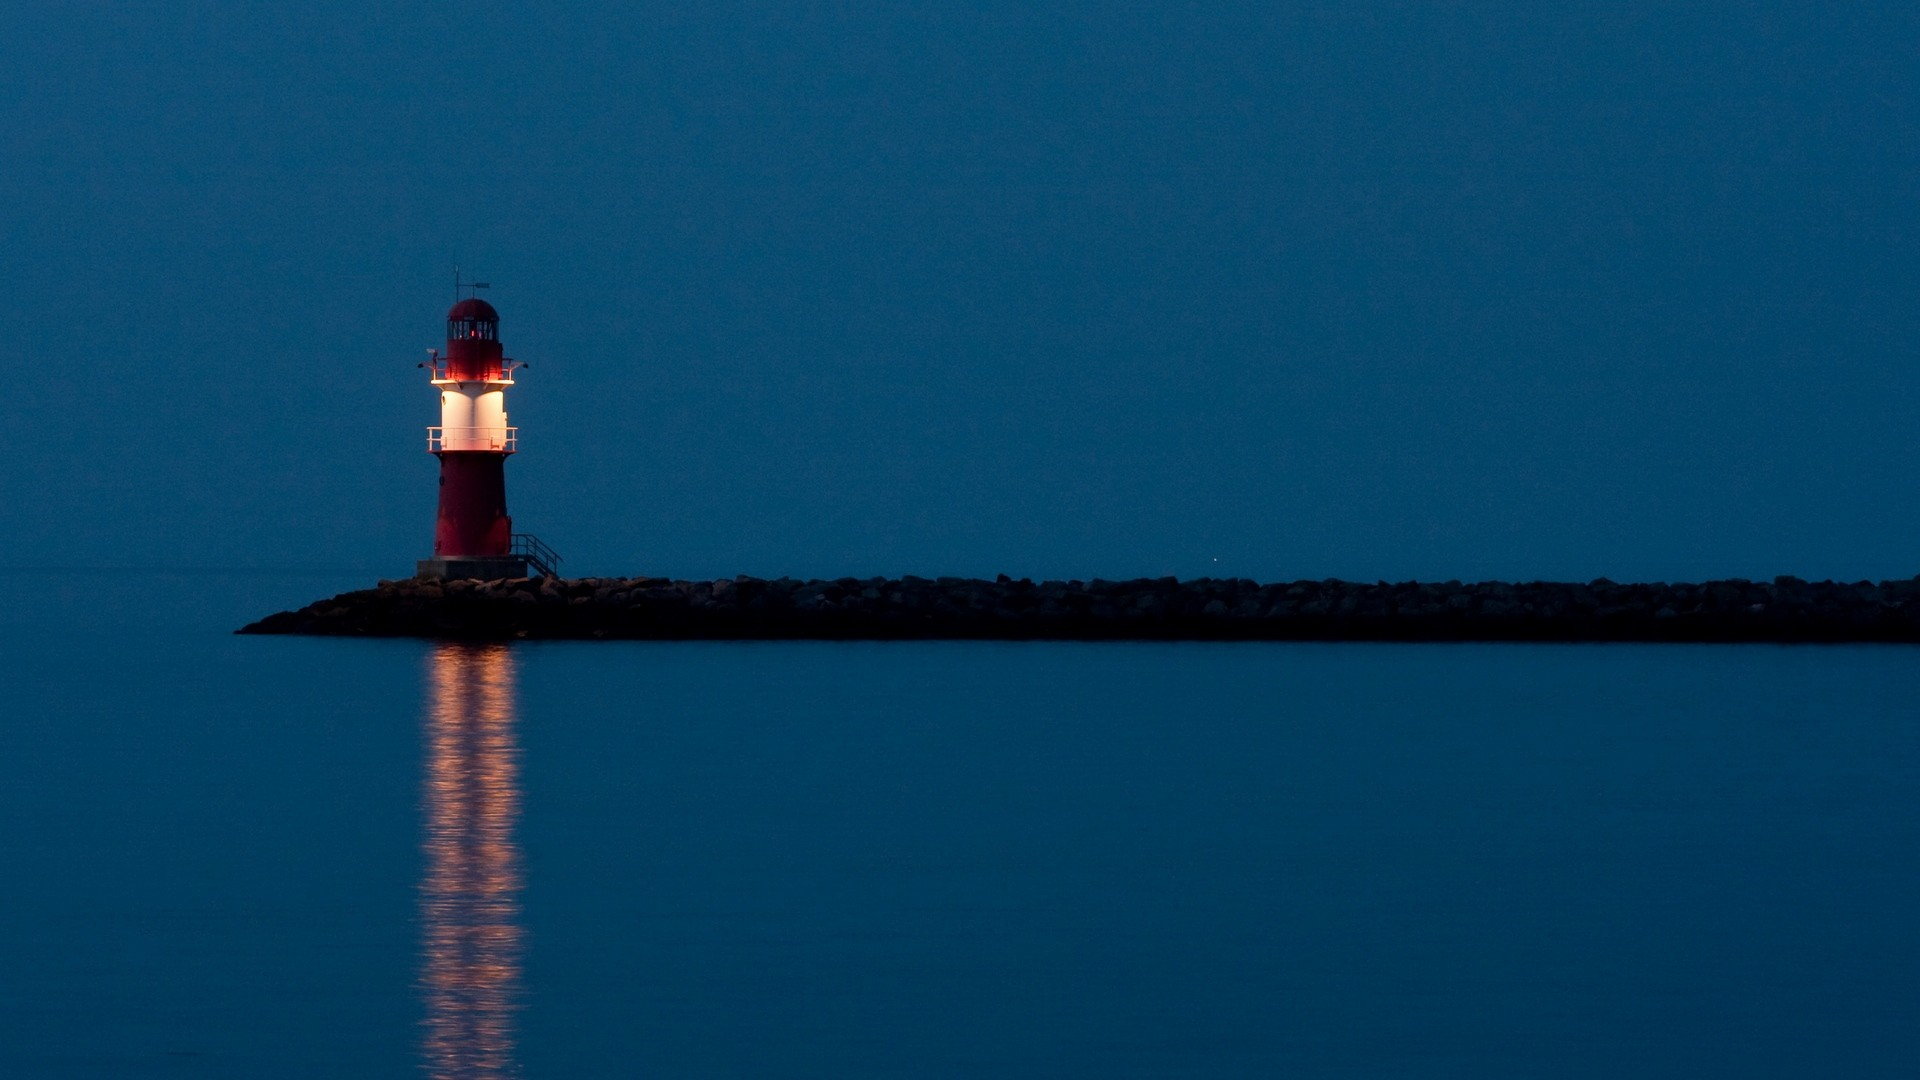 Free lighthouse pictures at night